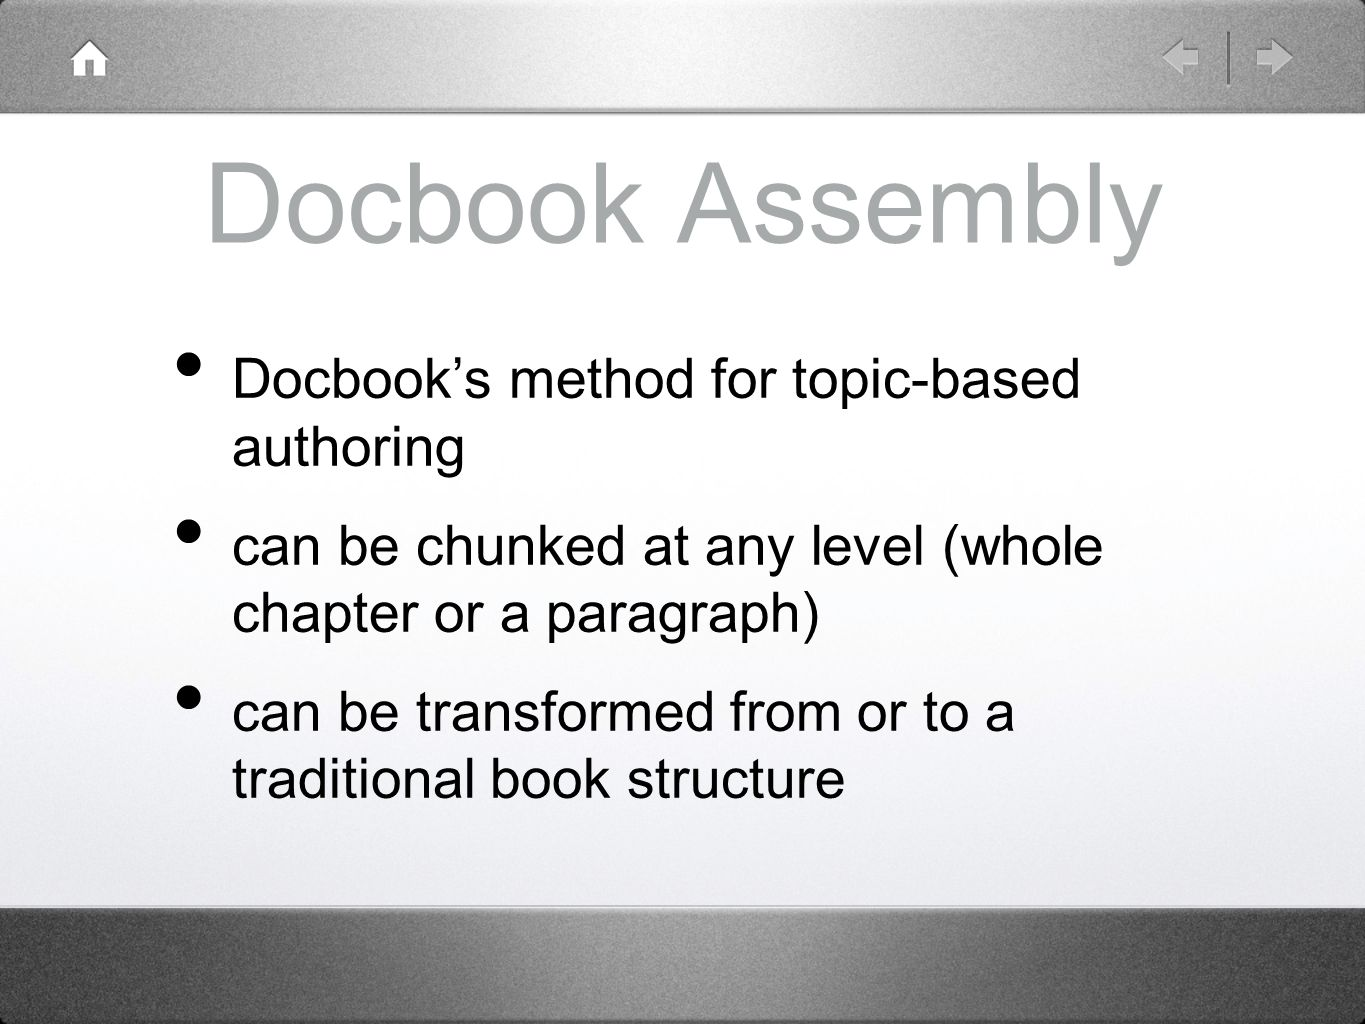 Docbook Assembly Docbook's method for topic-based authoring can be chunked at any level (whole chapter or a paragraph) can be transformed from or to a traditional book structure